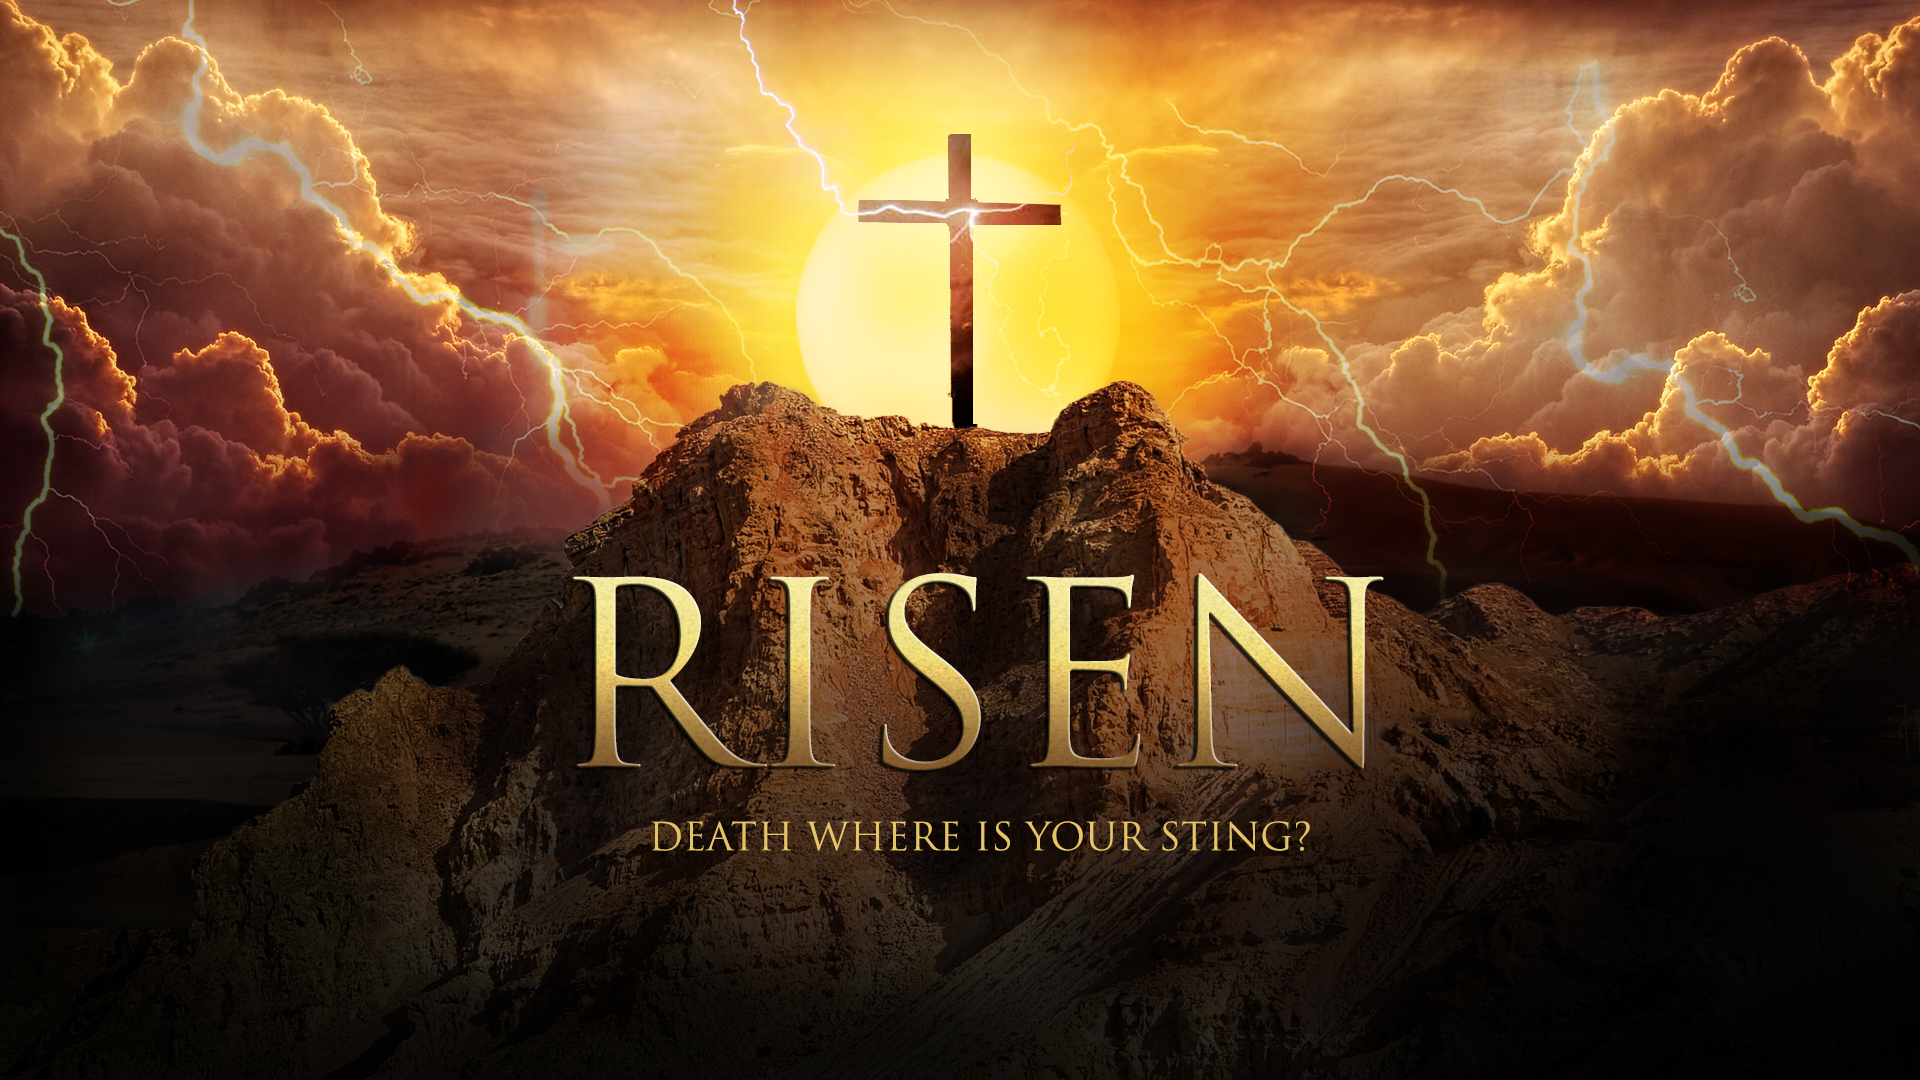 Easter Images He Is Risen HD Wallpaper And Background Photos